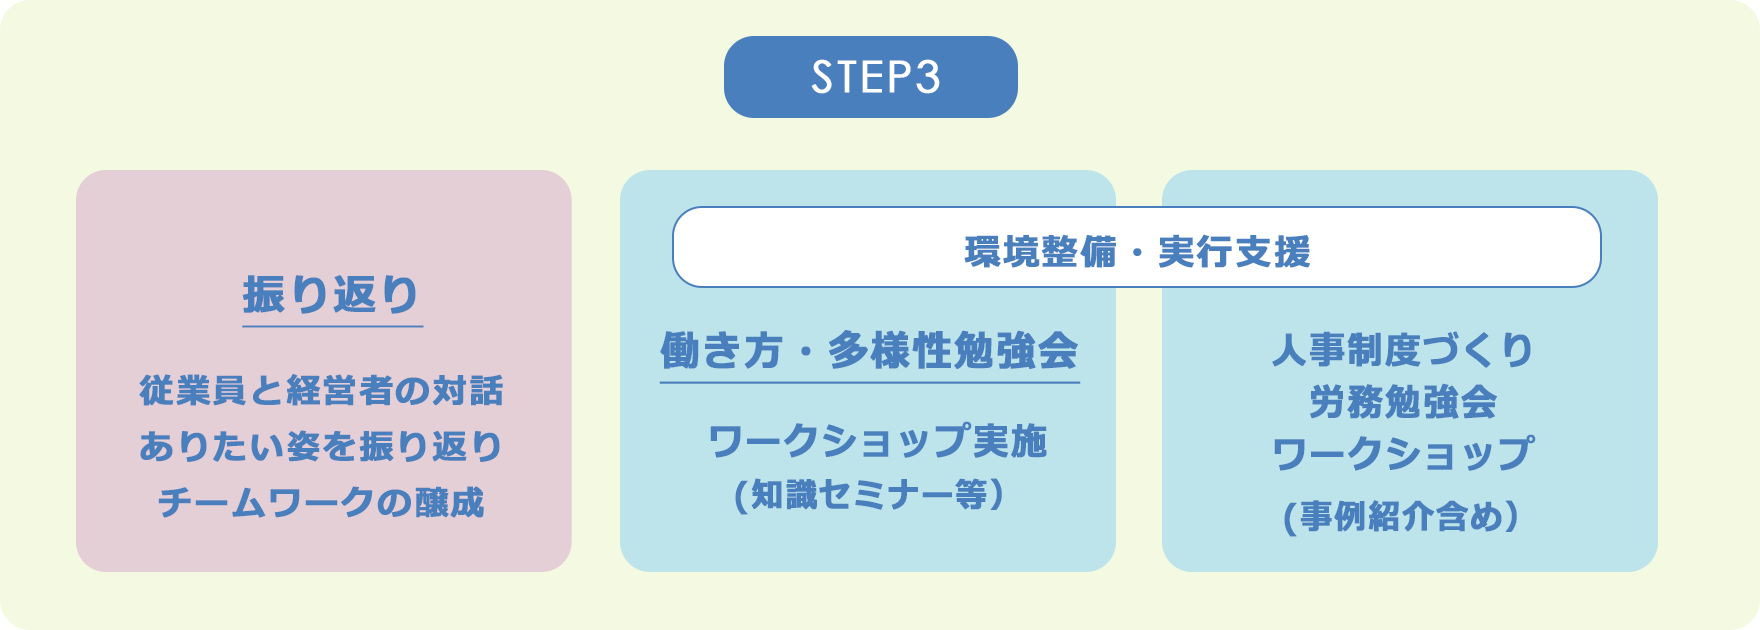 step3:従業員と経営者の対話やありたい姿を振り返りから、働き方・多様性勉強会や人事制度づくり労務勉強会